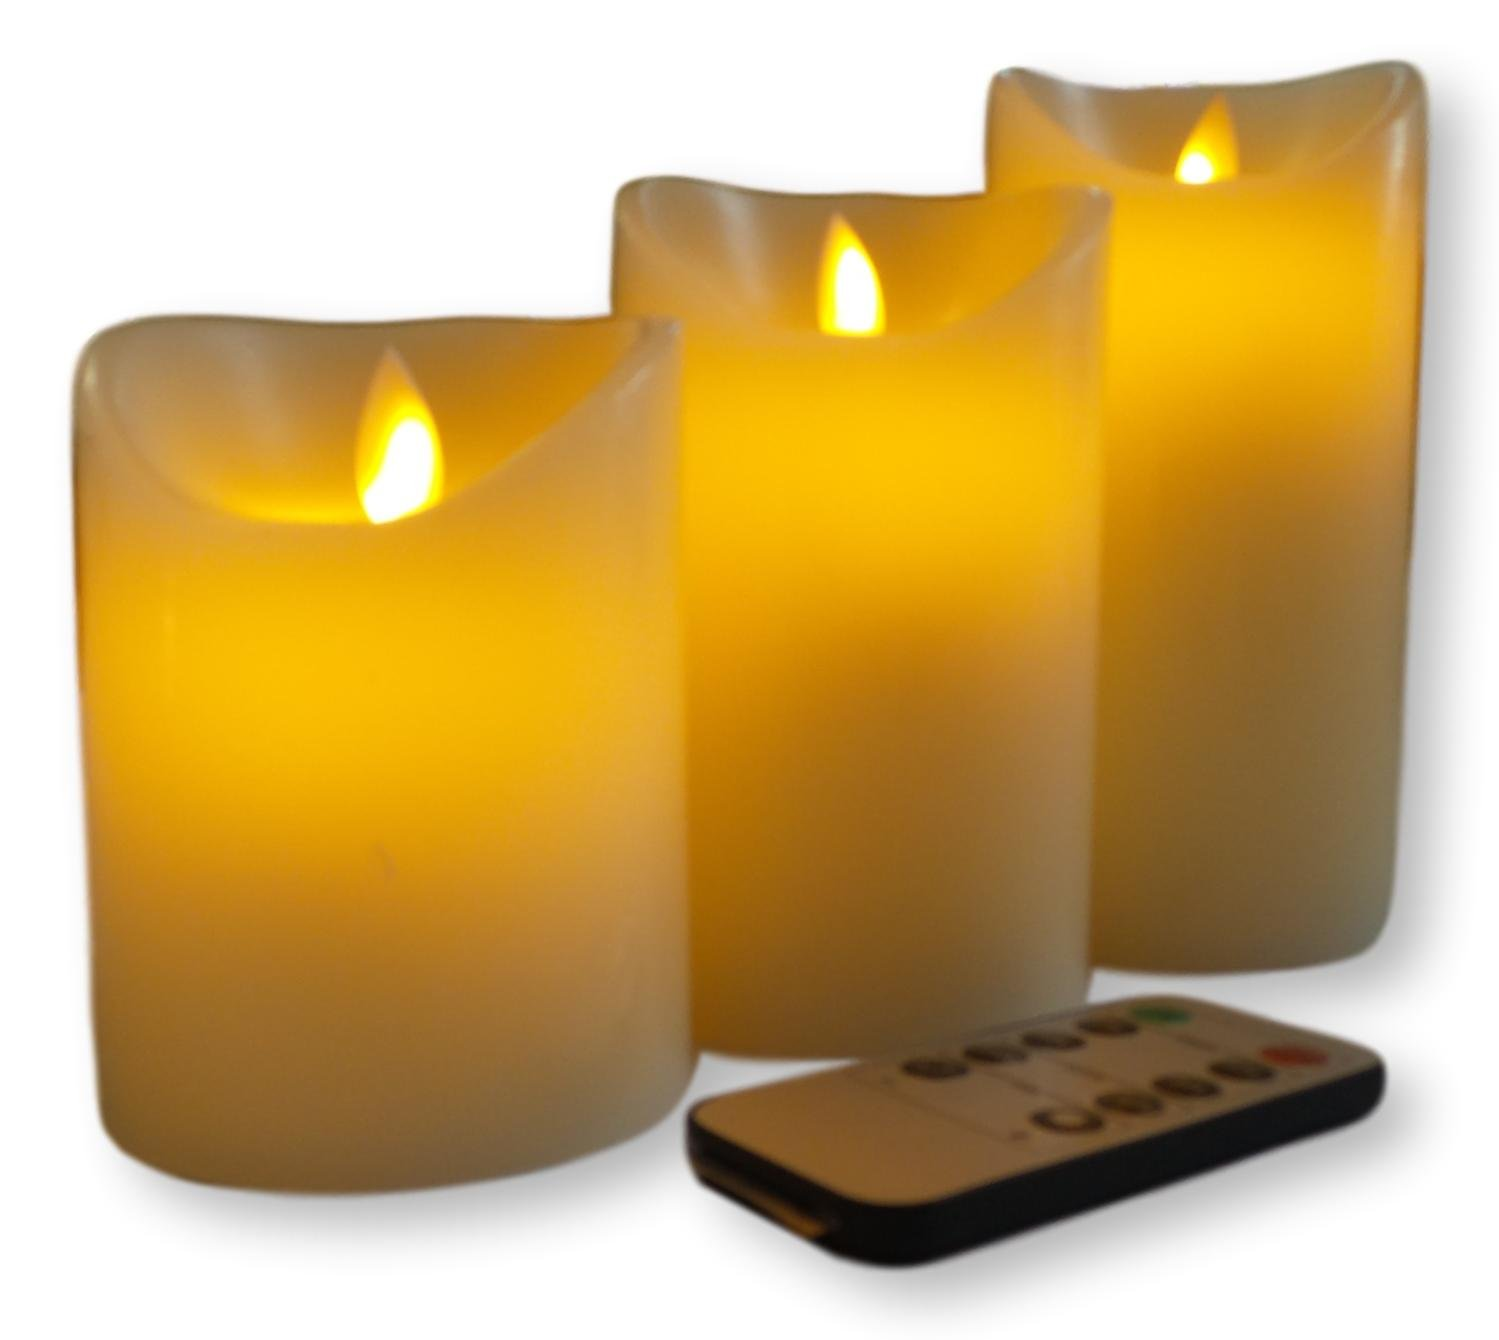 One World Magic Candle Set - 4'',5'',6'' Flameless, Real Wax Ivory Pillar Vanilla Scent with Remote (3 pc - 3 in. Diameter)